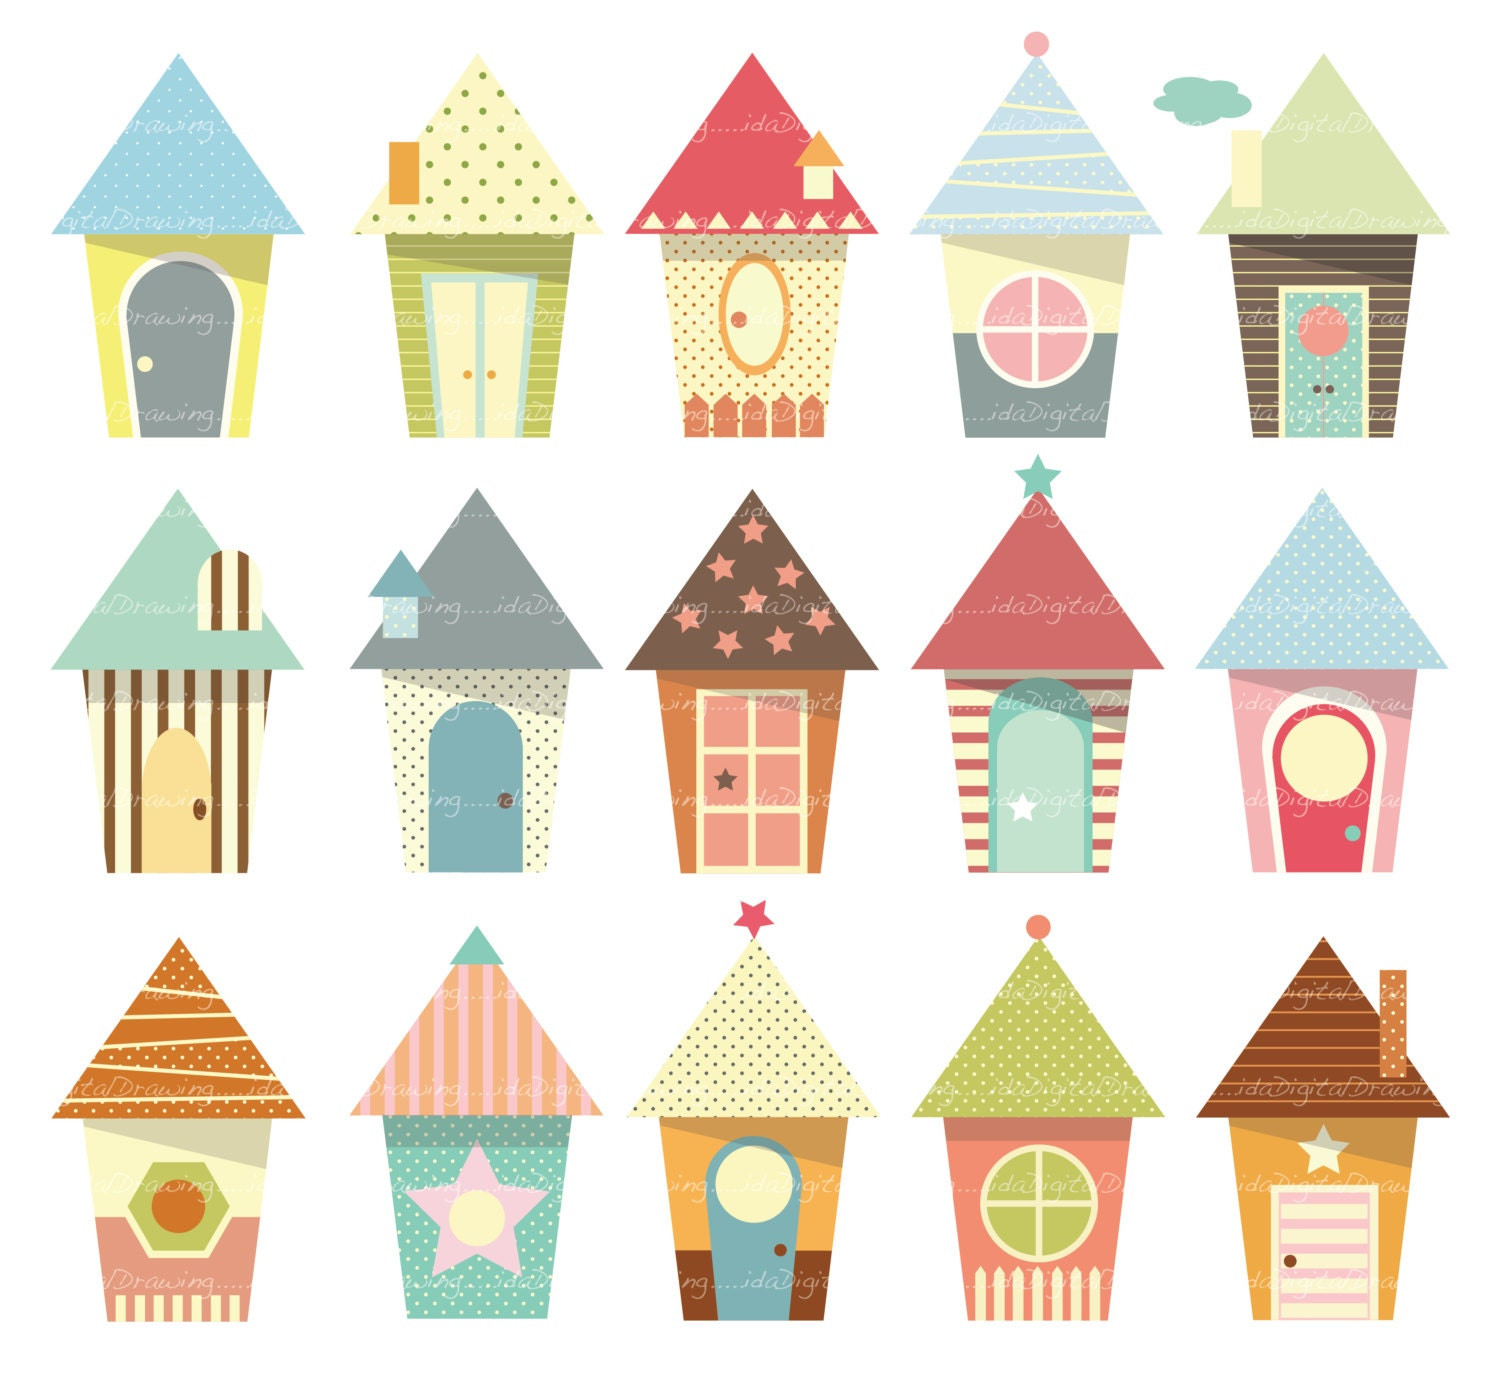 Baby houses clip art high resolution for Free house drawing